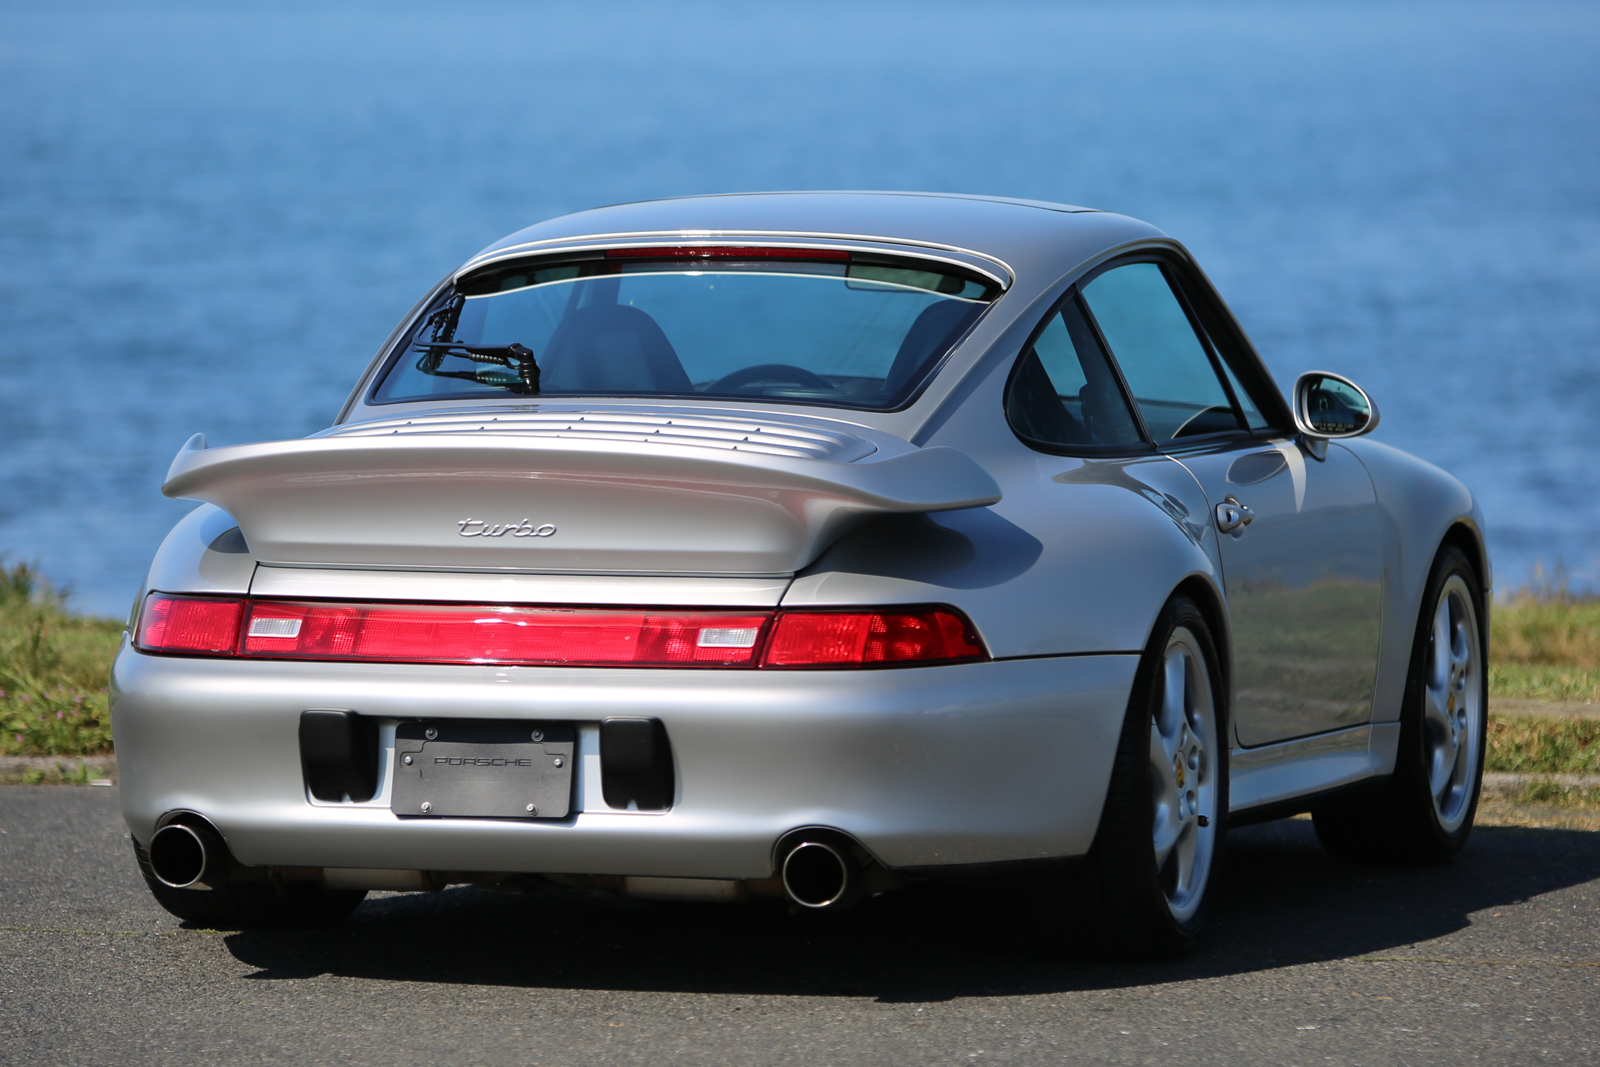 1997 Porsche 911/993 Turbo for sale